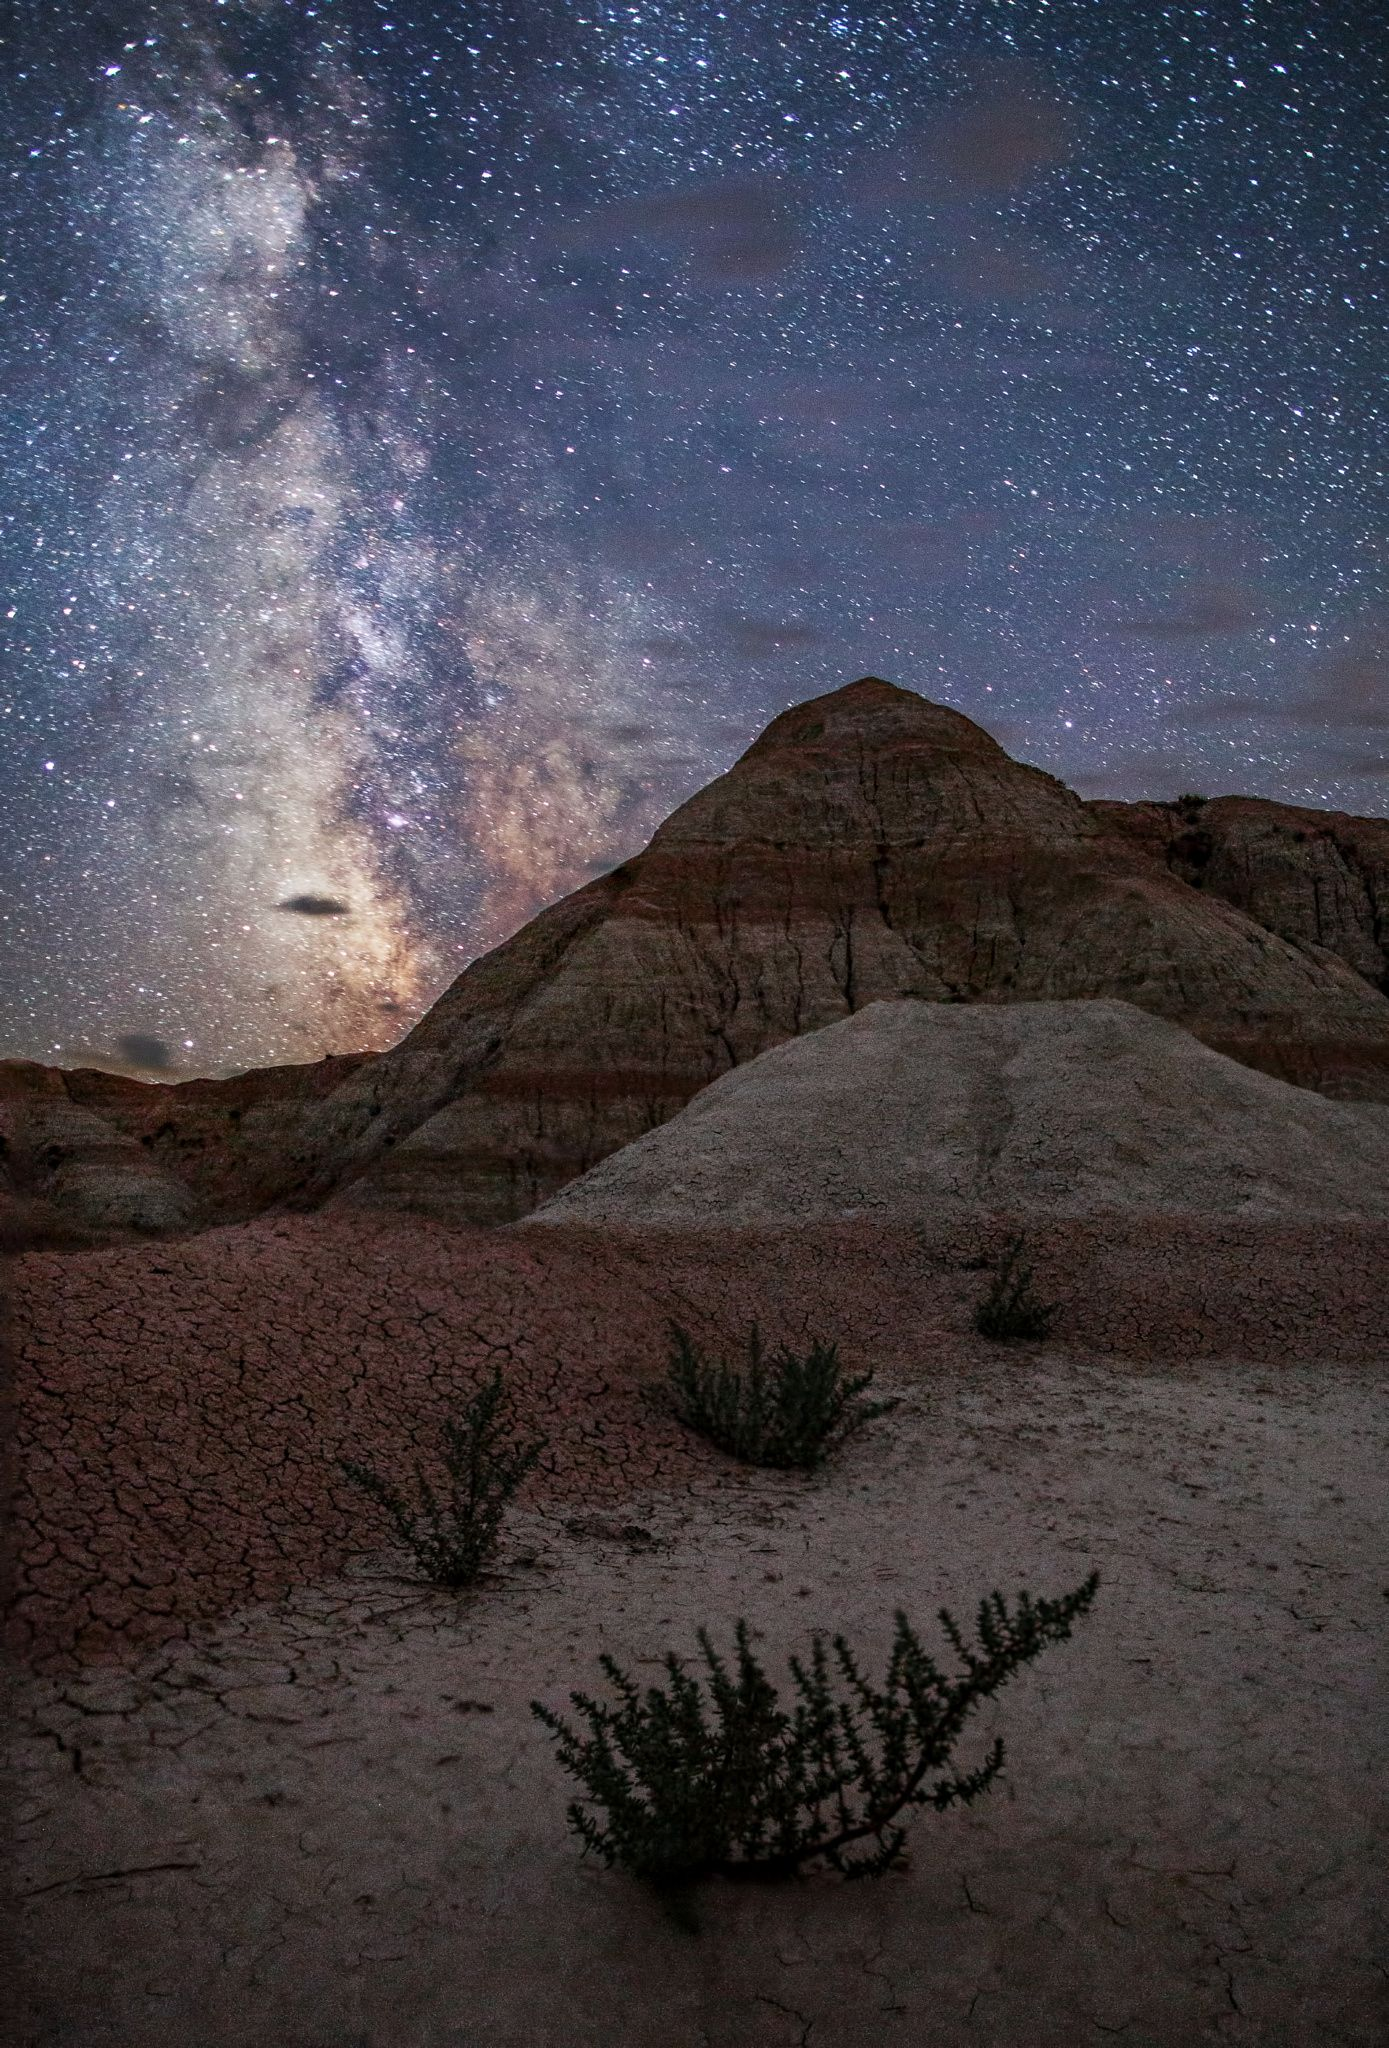 milky way at the bruneau dunes by shane black on 500px space milky way at the bruneau dunes by shane black on 500px space pinterest shane black dune and nature photos